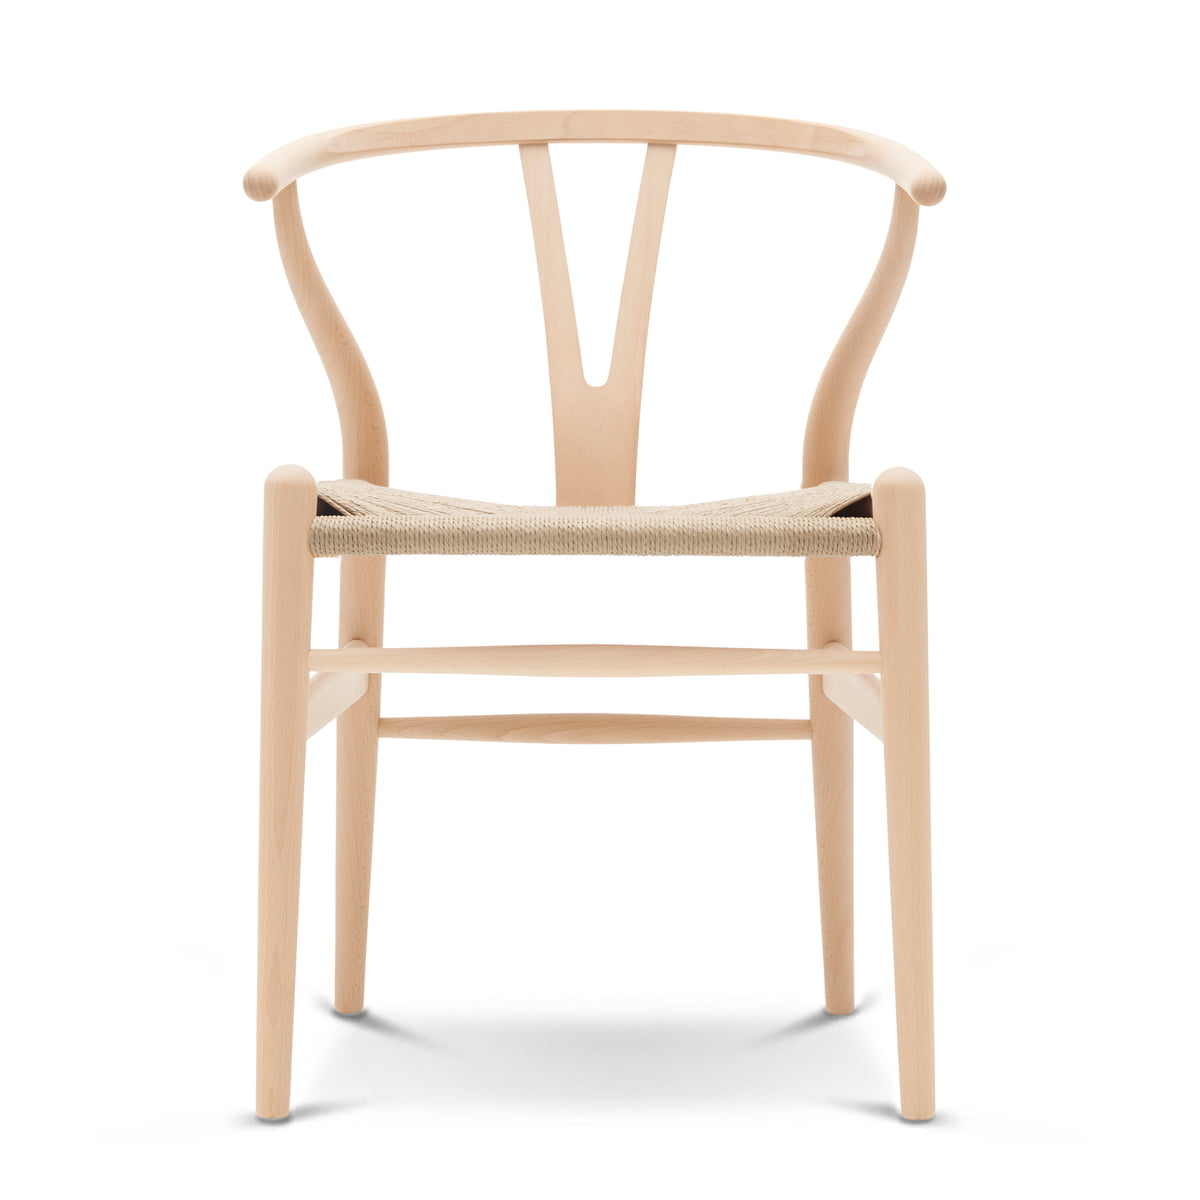 The CH24 Wishbone Chair By Carl Hansen In Soaped Beech / Natural Wicker